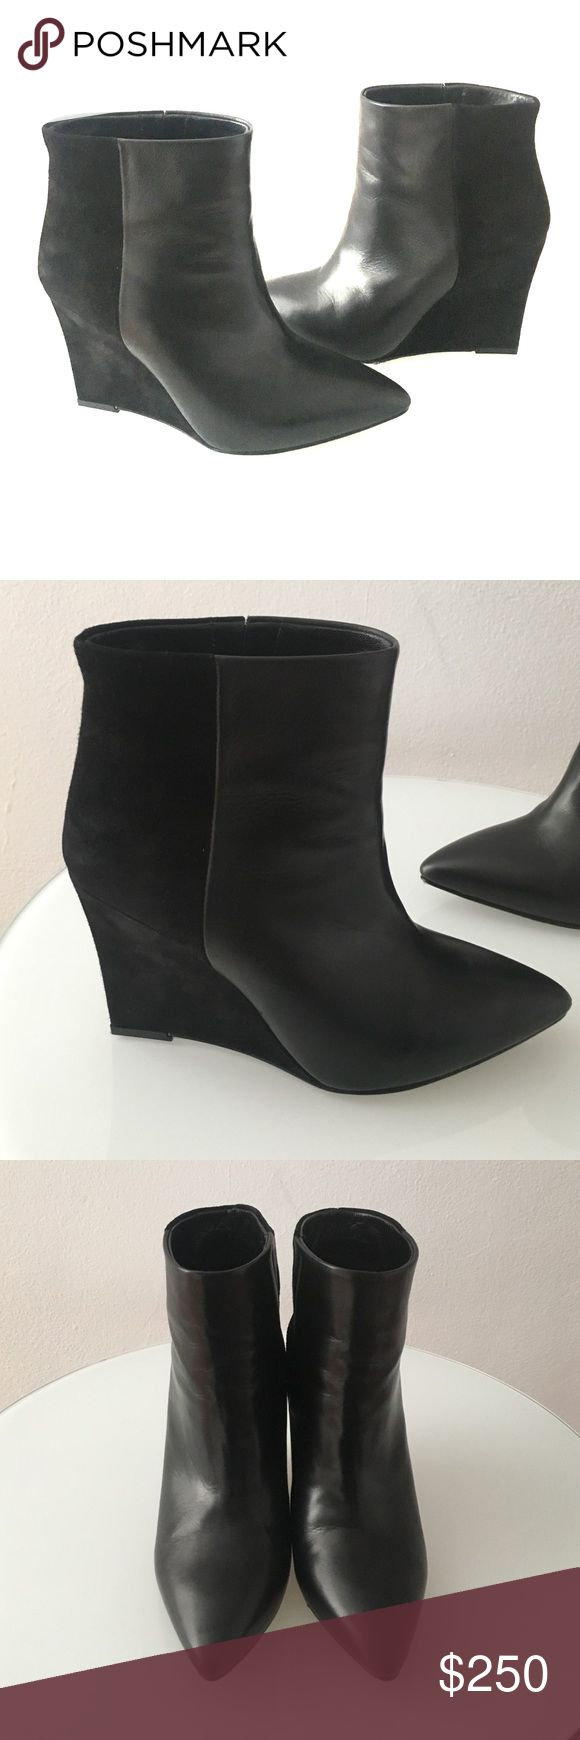 Allsaints Manifesto Boot size US 7 This chic bootie is perfect for winter, and has never been worn.  It has a wide ankle opening. Lamb skin and suede about a 4 inch heel. Allsaints Shoes Ankle Boots & Booties